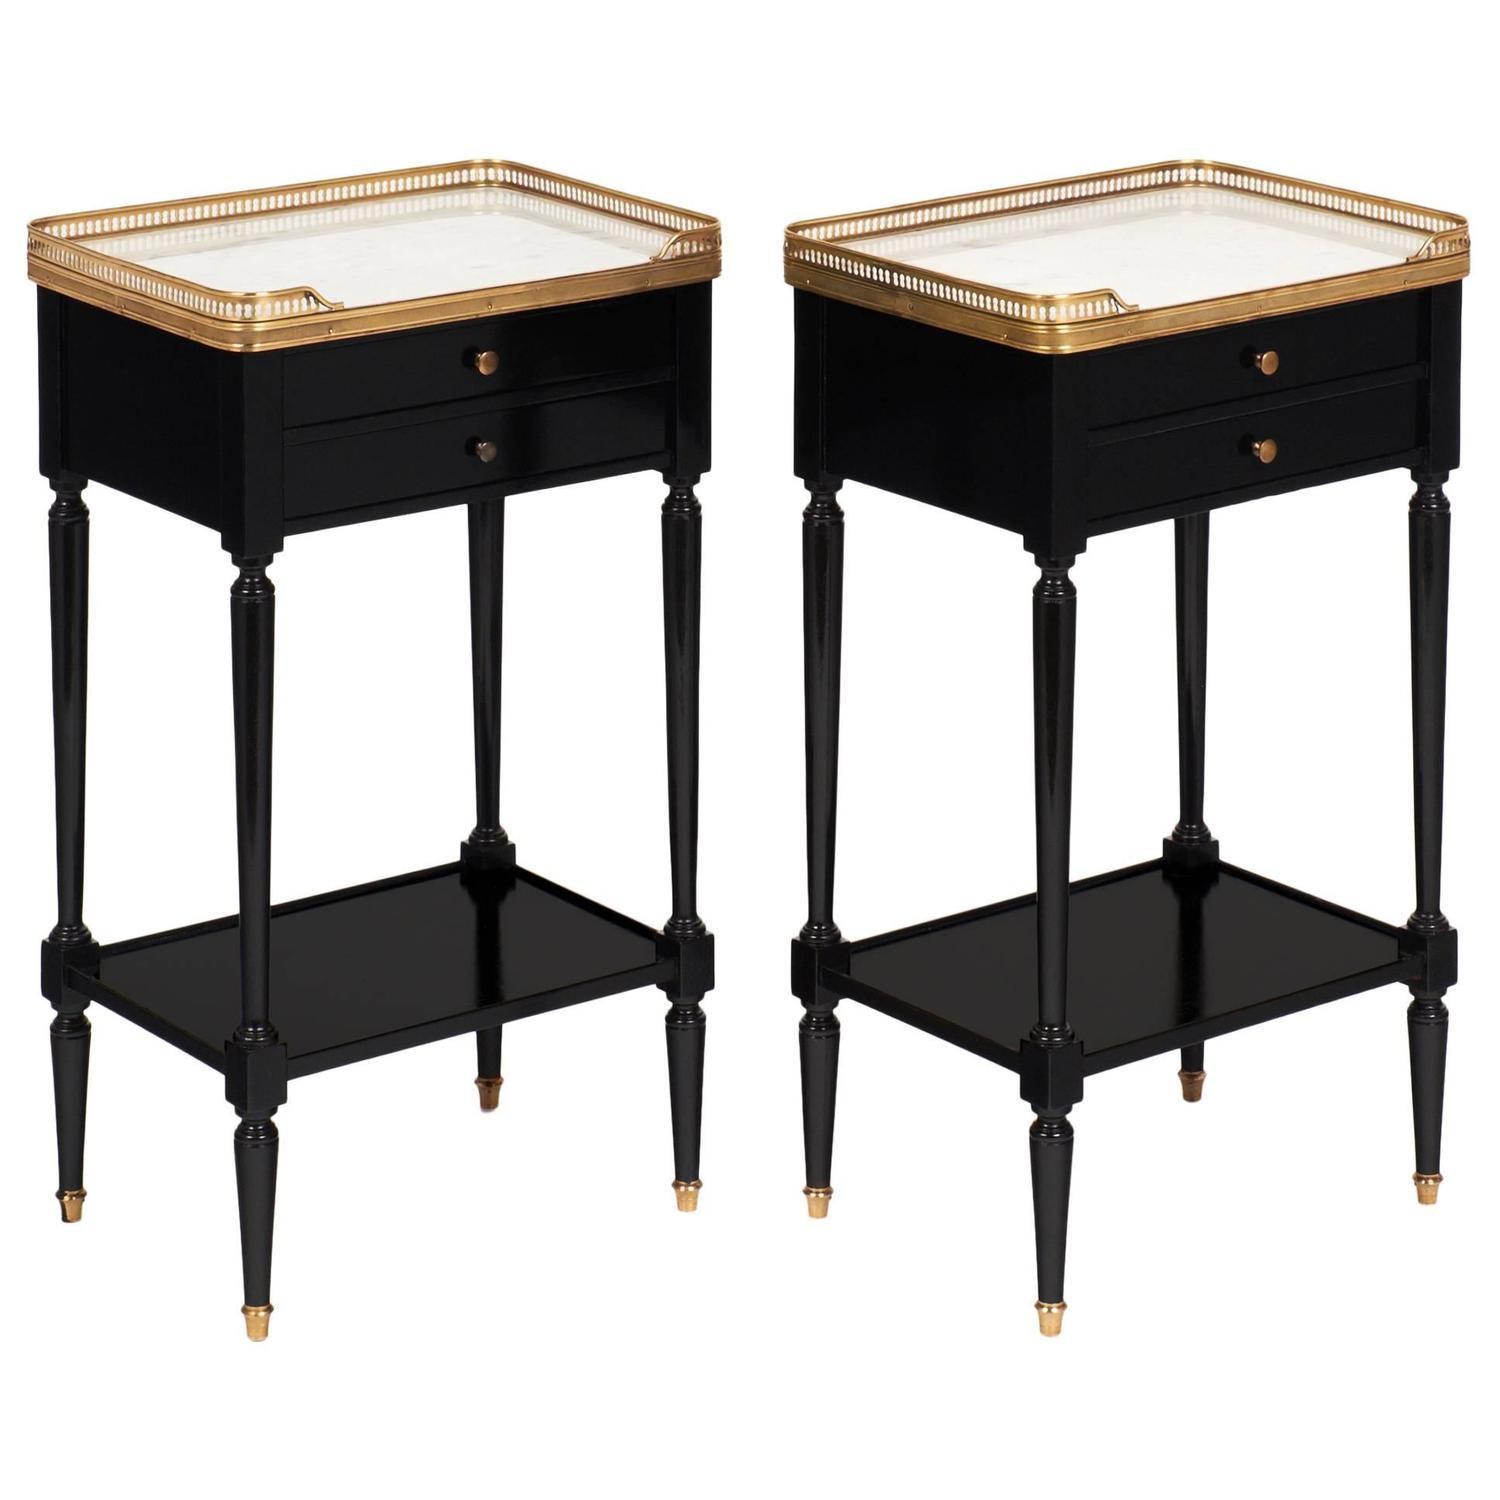 Pair of Antique Louis XVI French Side Tables with Carrara Marble